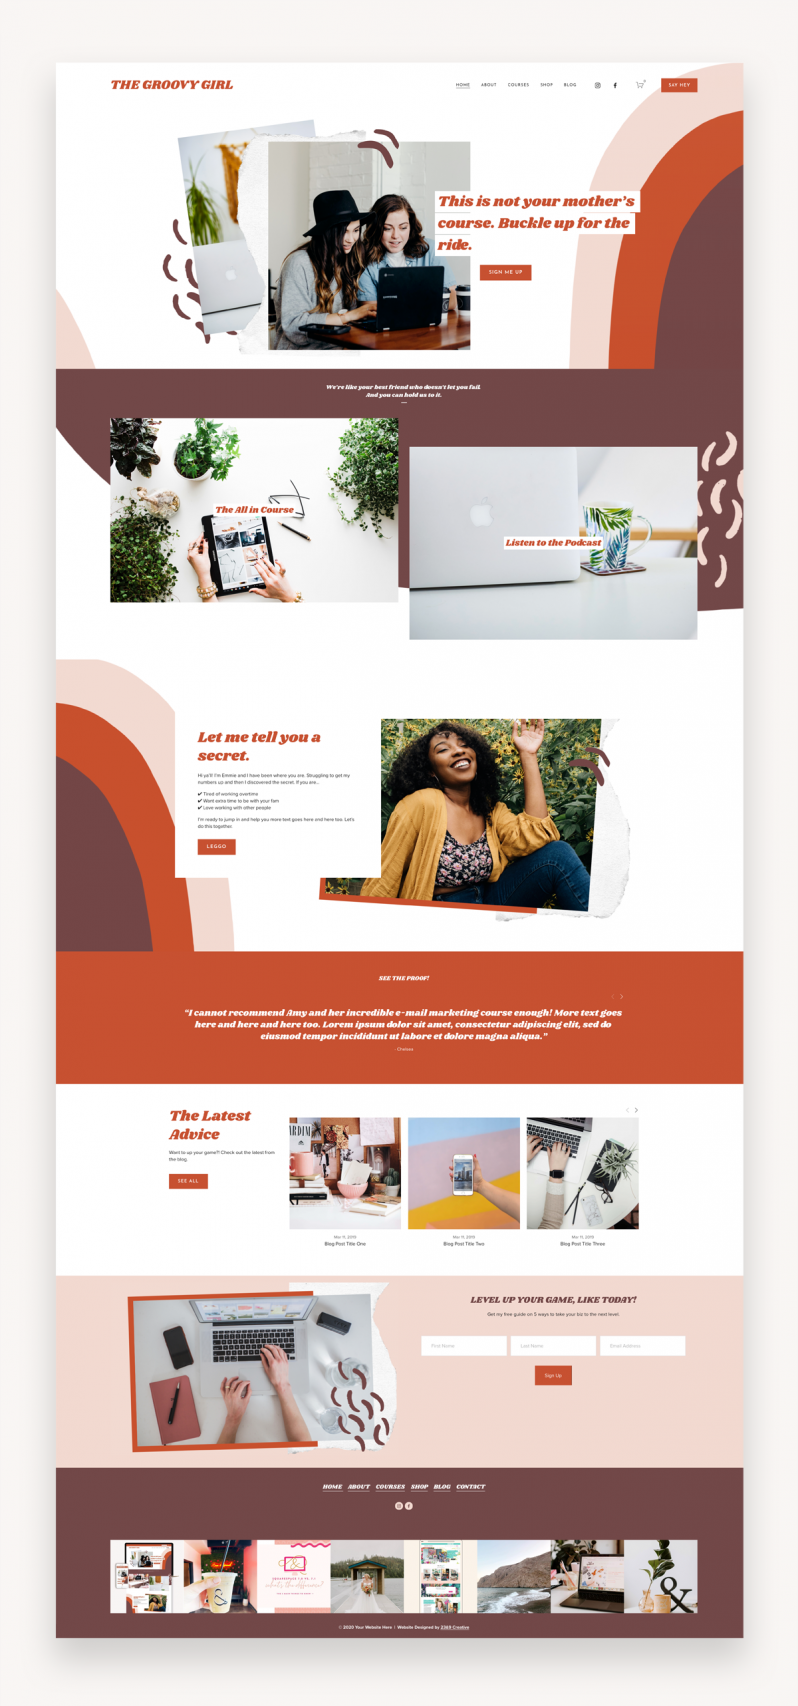 Groovy Girl Squarespace Template